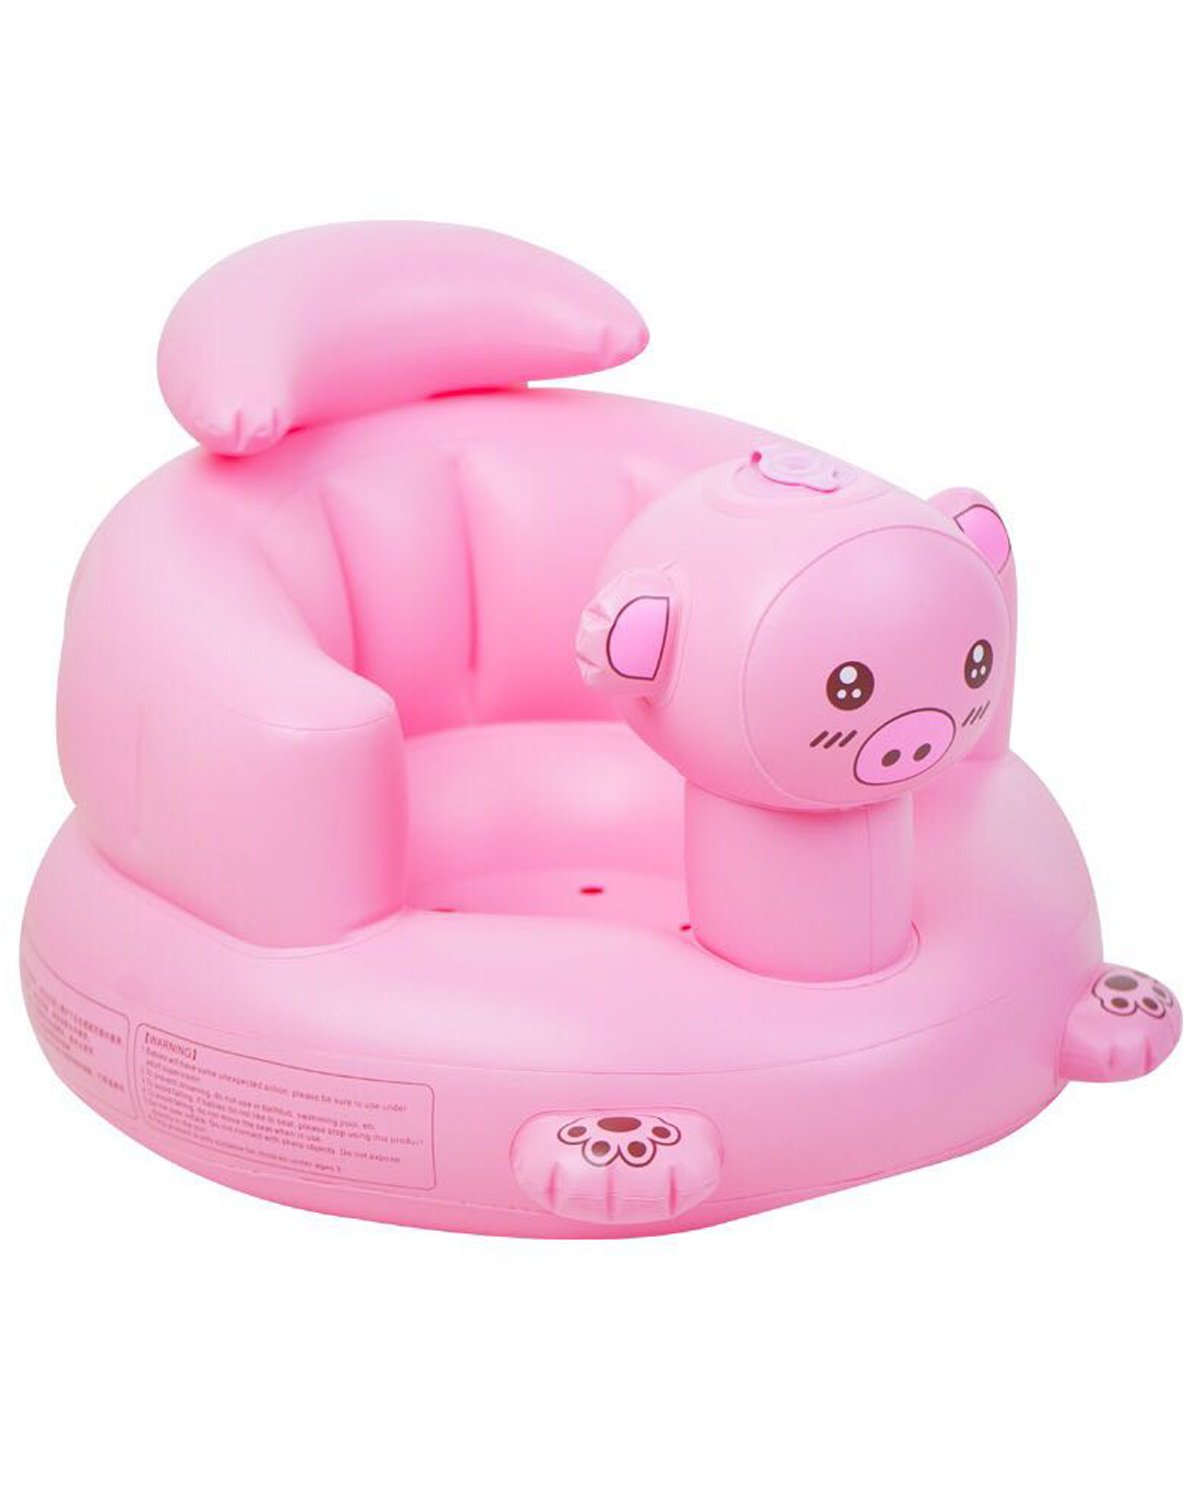 Inflatable Sofa for Baby Jusinhel Air Seat Use for Infant Shower and Learning to Sit with Durable Eco-Friendly Material - Pink Cat 691608943273